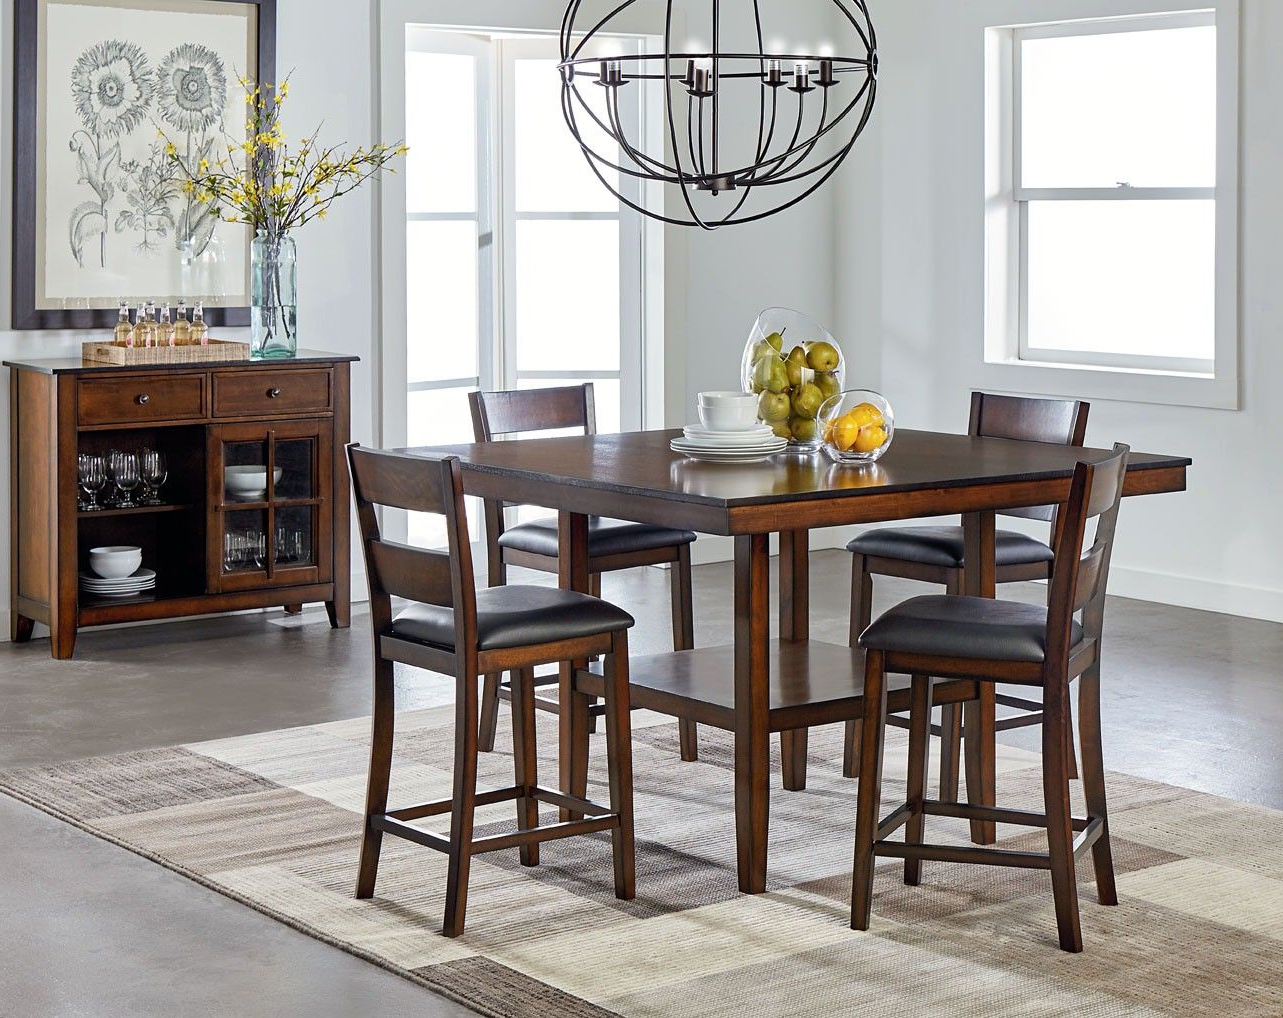 Pineville Dining Sideboards In 2020 Pendwood Dark Merlot Cherry Counter Height Dining Room Set (View 19 of 20)